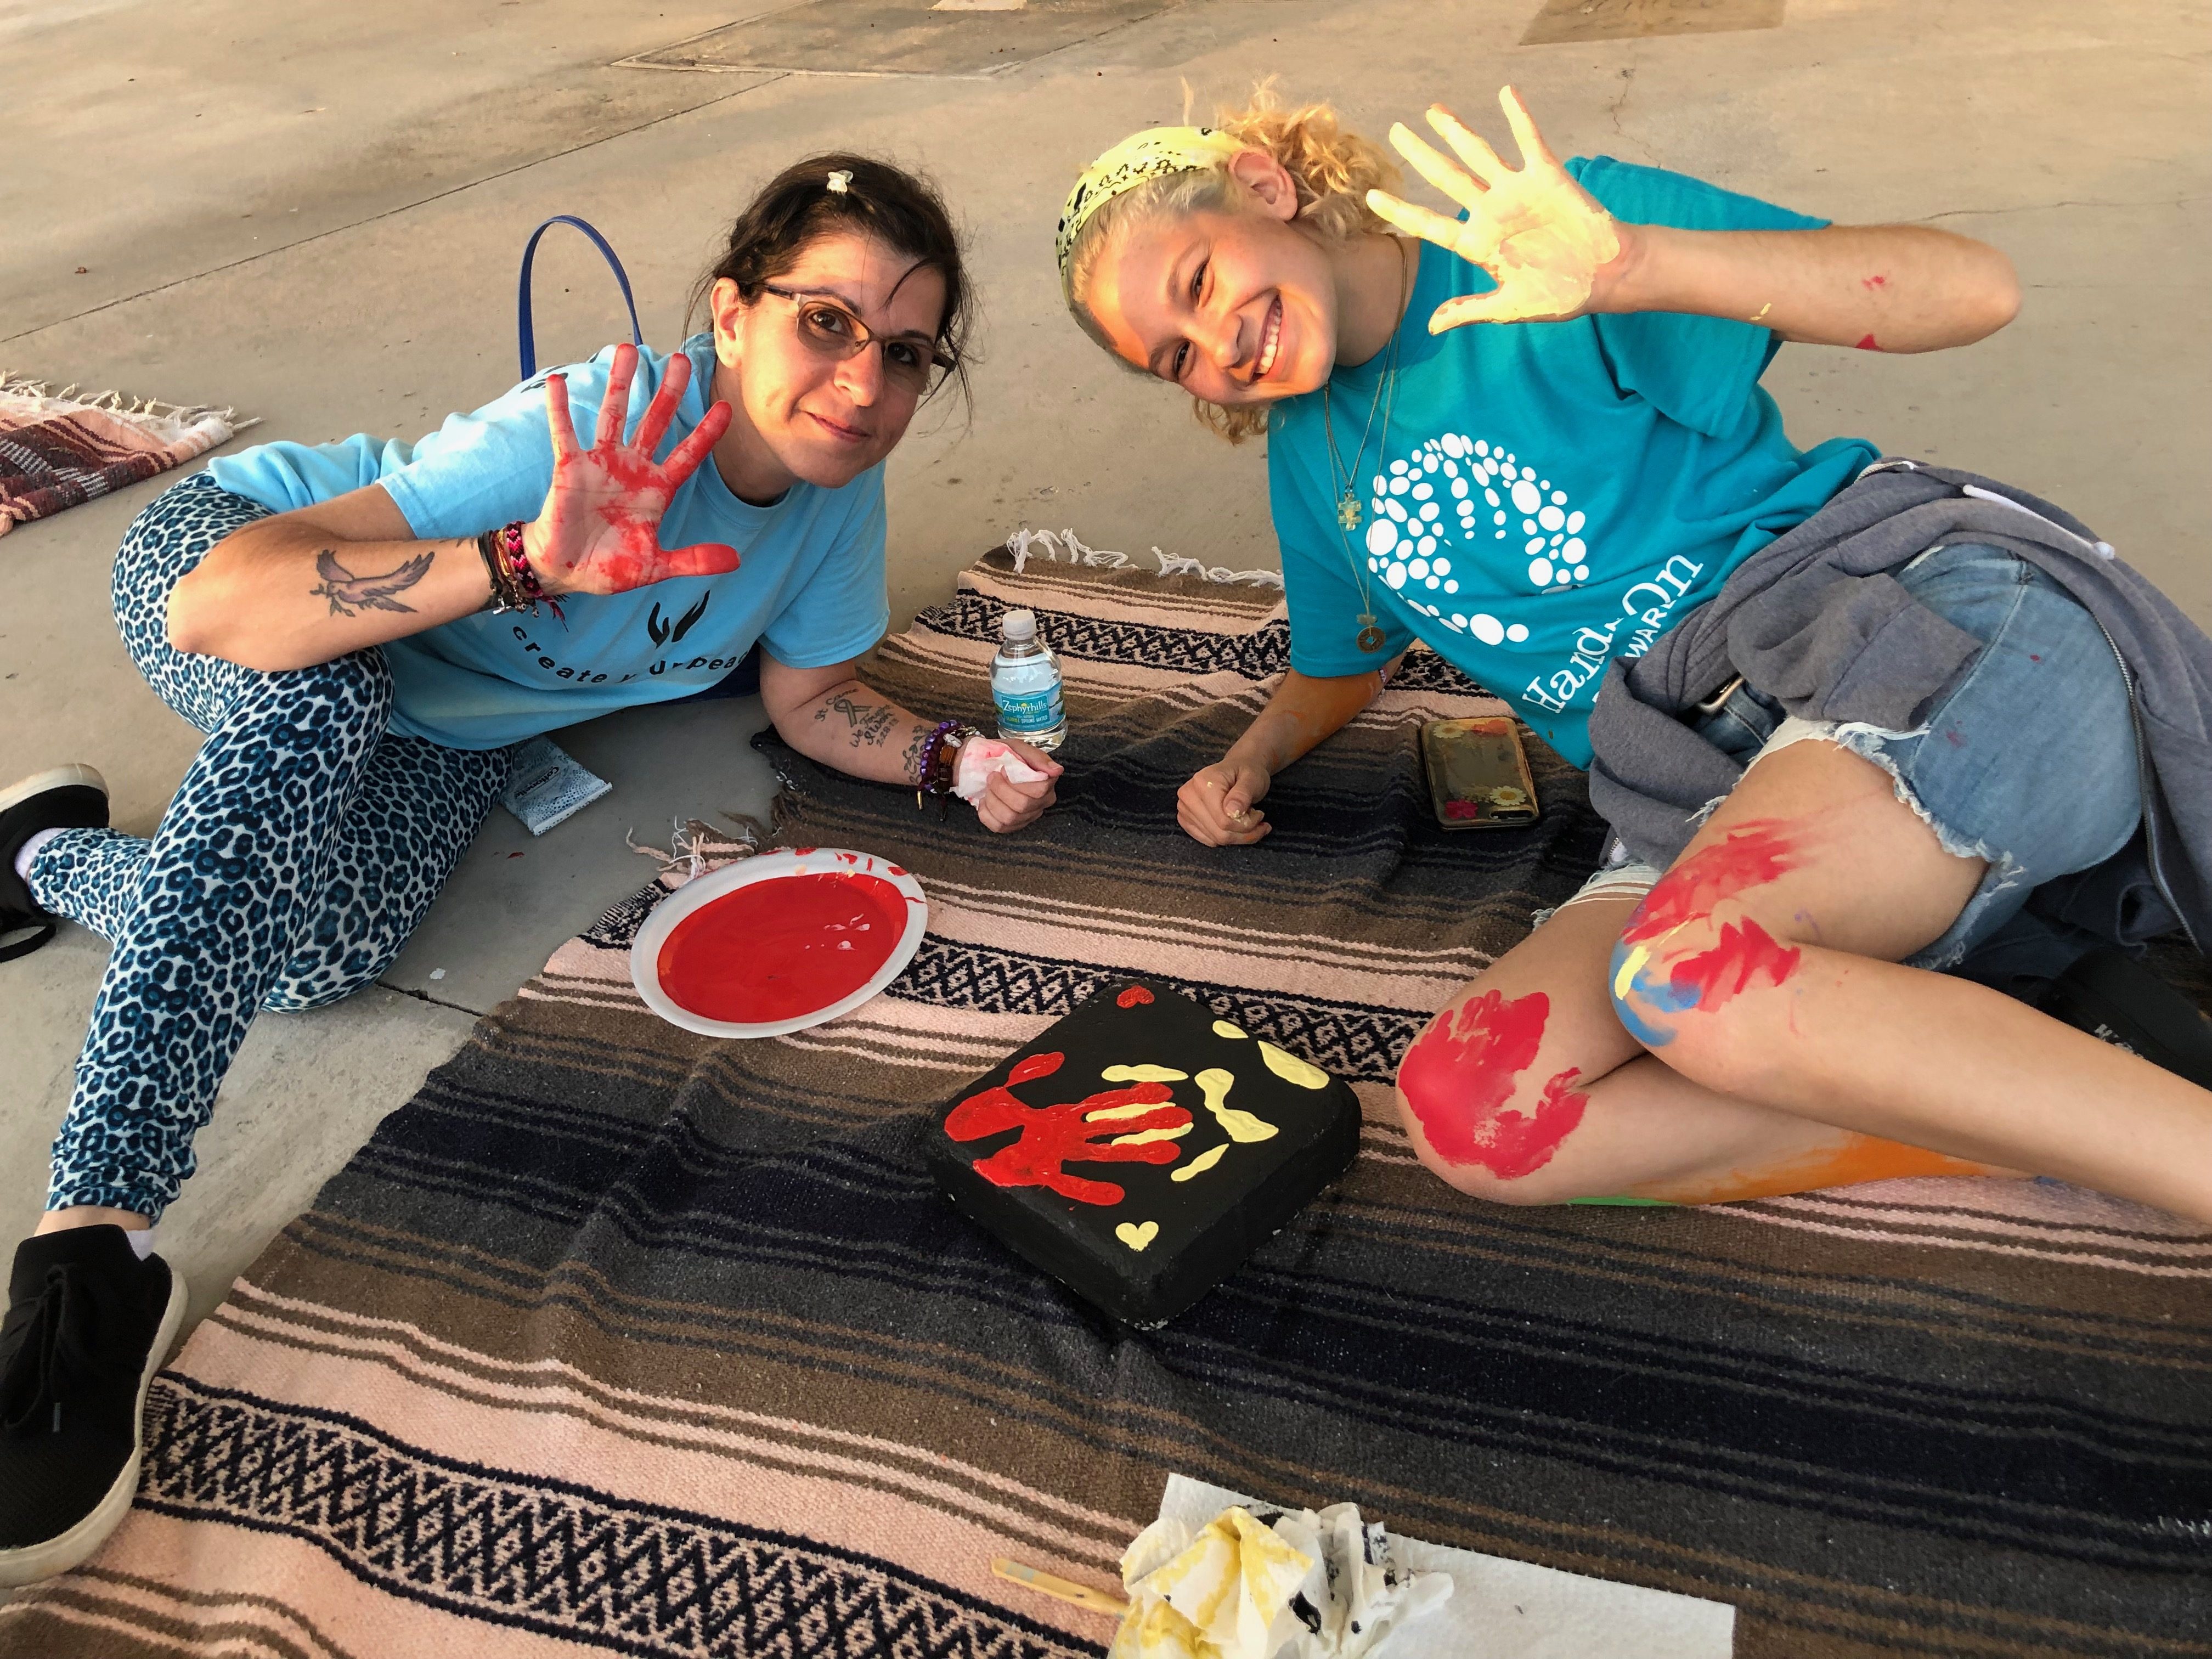 Stoneman Douglas teacher Ronit Reoven (left) and senior Tori Gonzalez (right) paint ceramic tiles for Project Grow Love, a garden memorial they built outside the school.